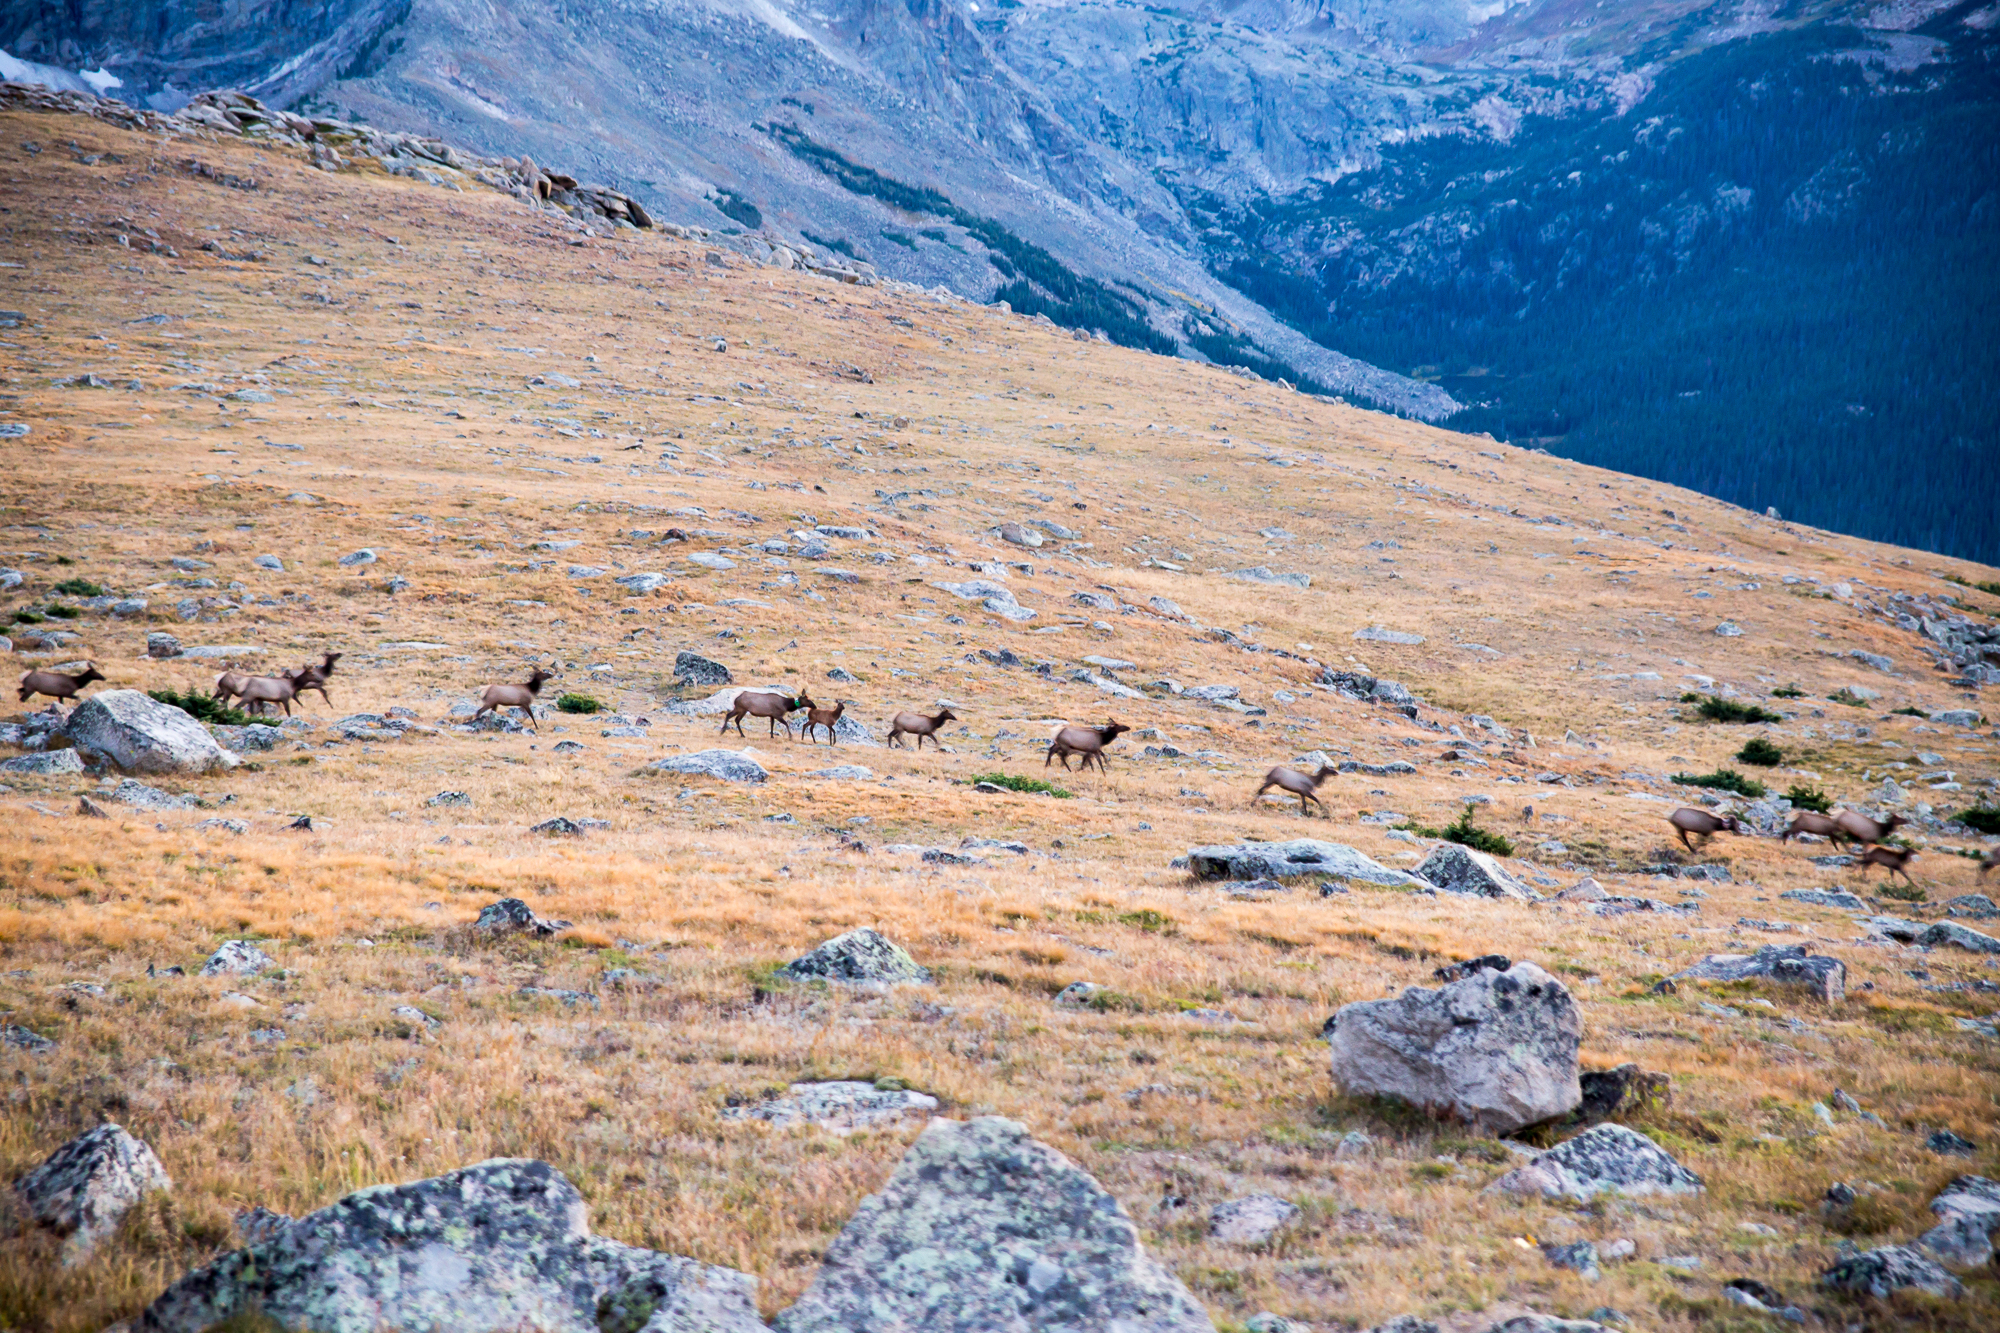 HERD OF ELK GOING DOWN THE MOUNTAINS